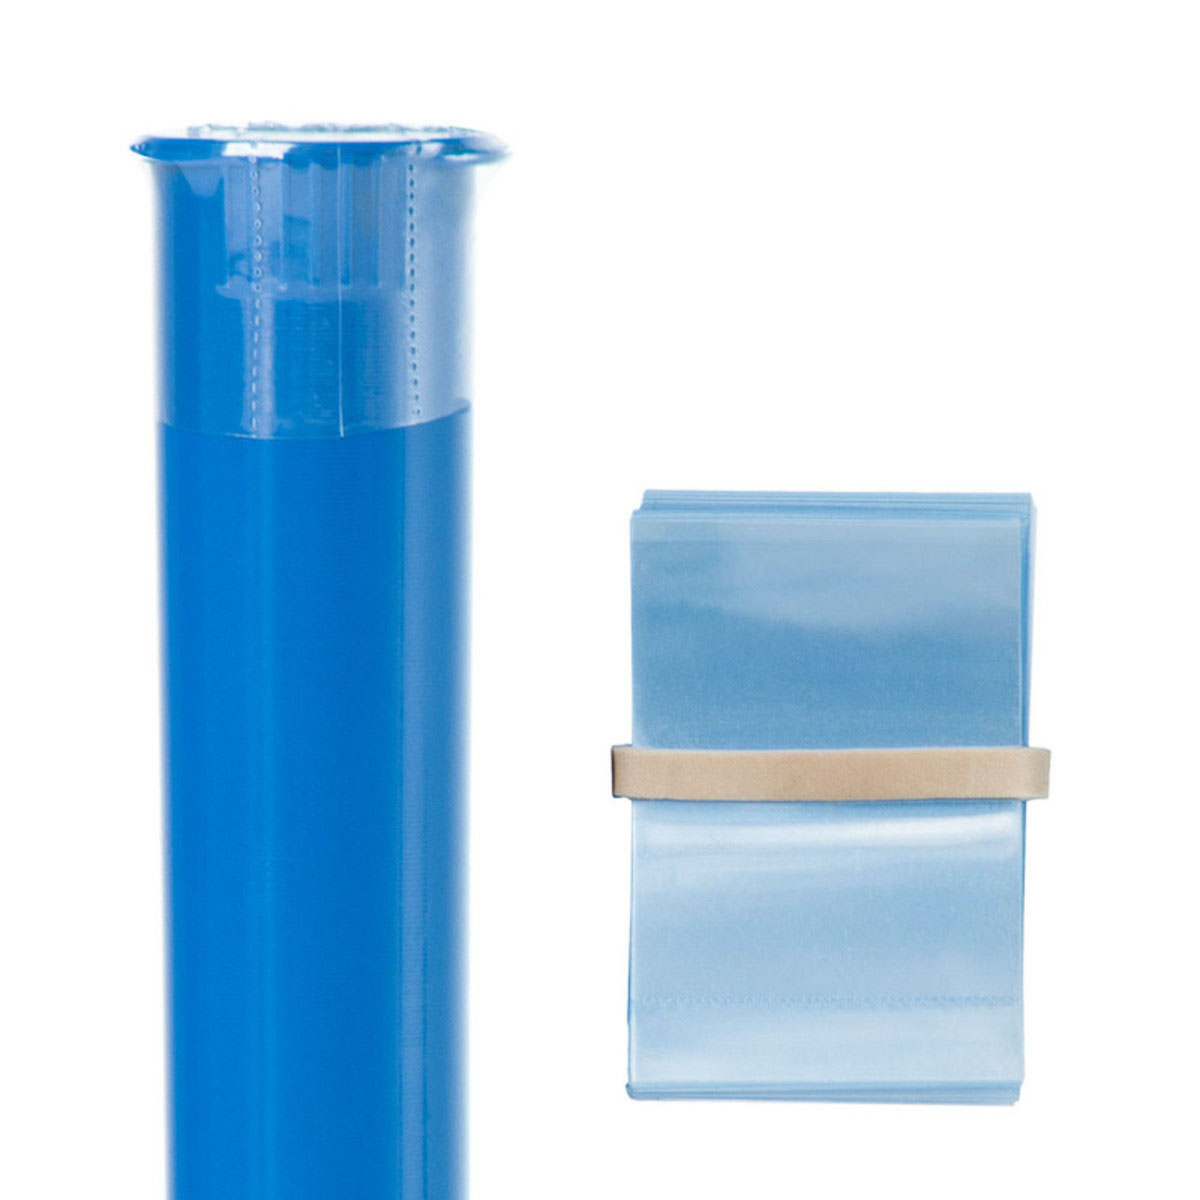 Pre-roll Tube Tamper Evident Bands (250 Qty.)